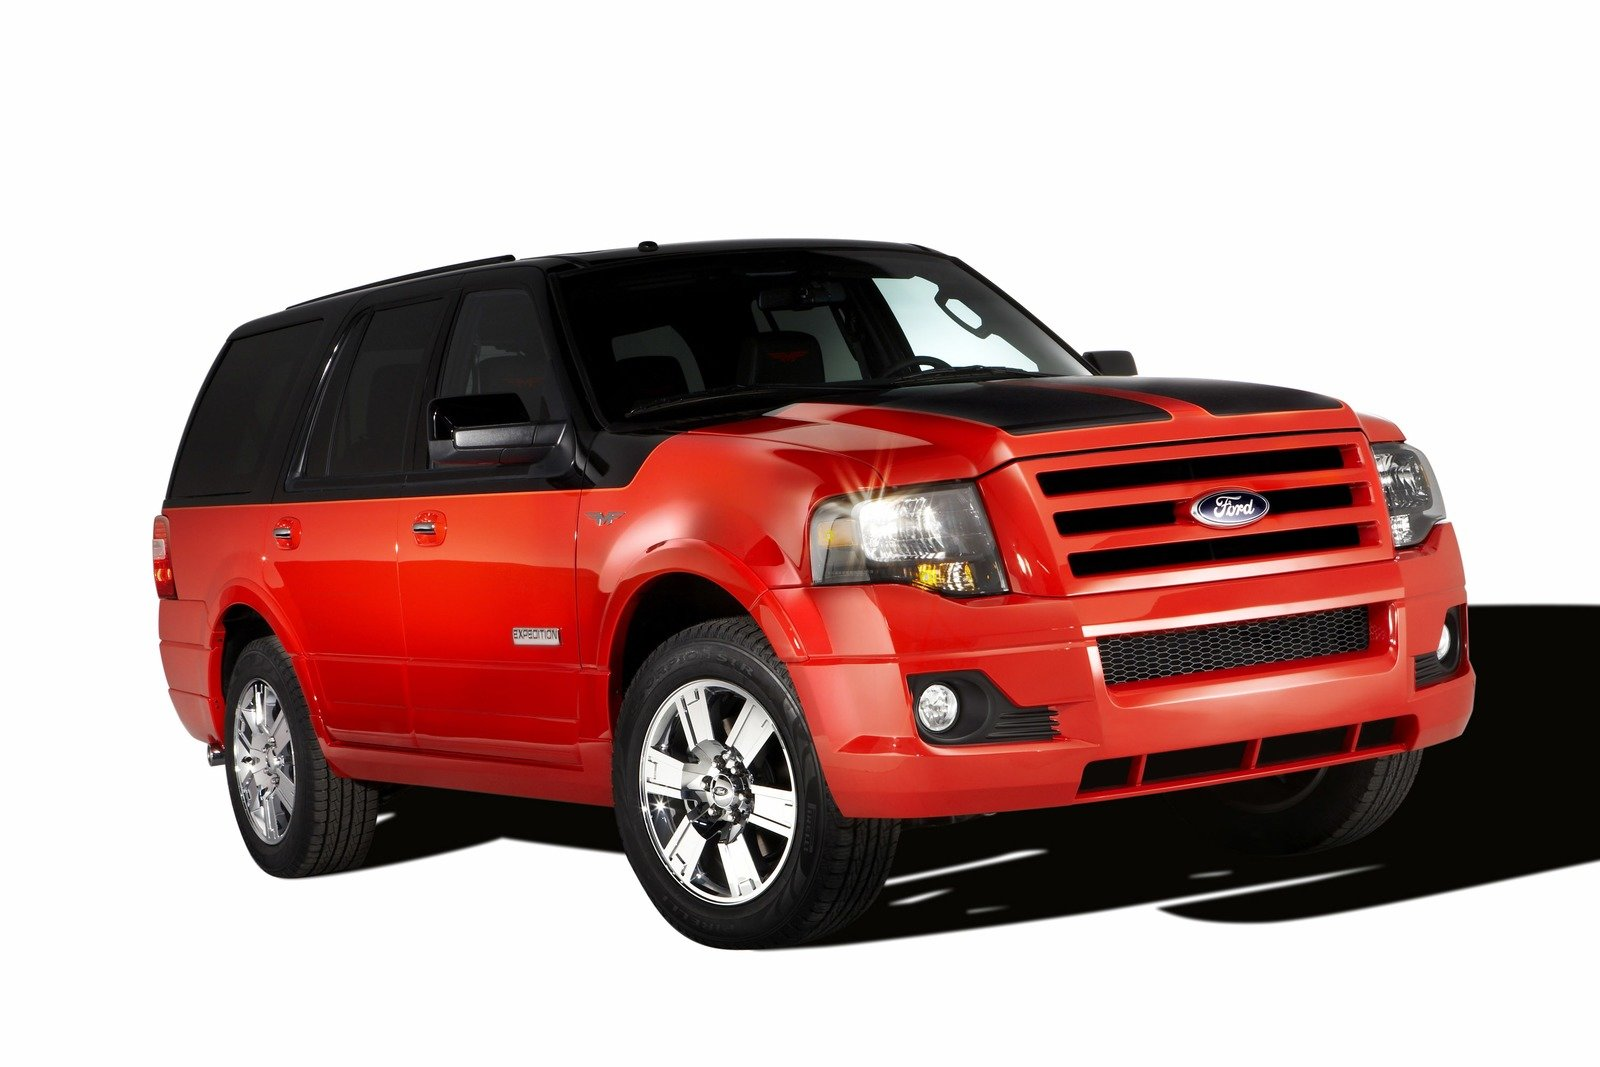 2008 Ford Expedition Funkmaster Flex Edition Review